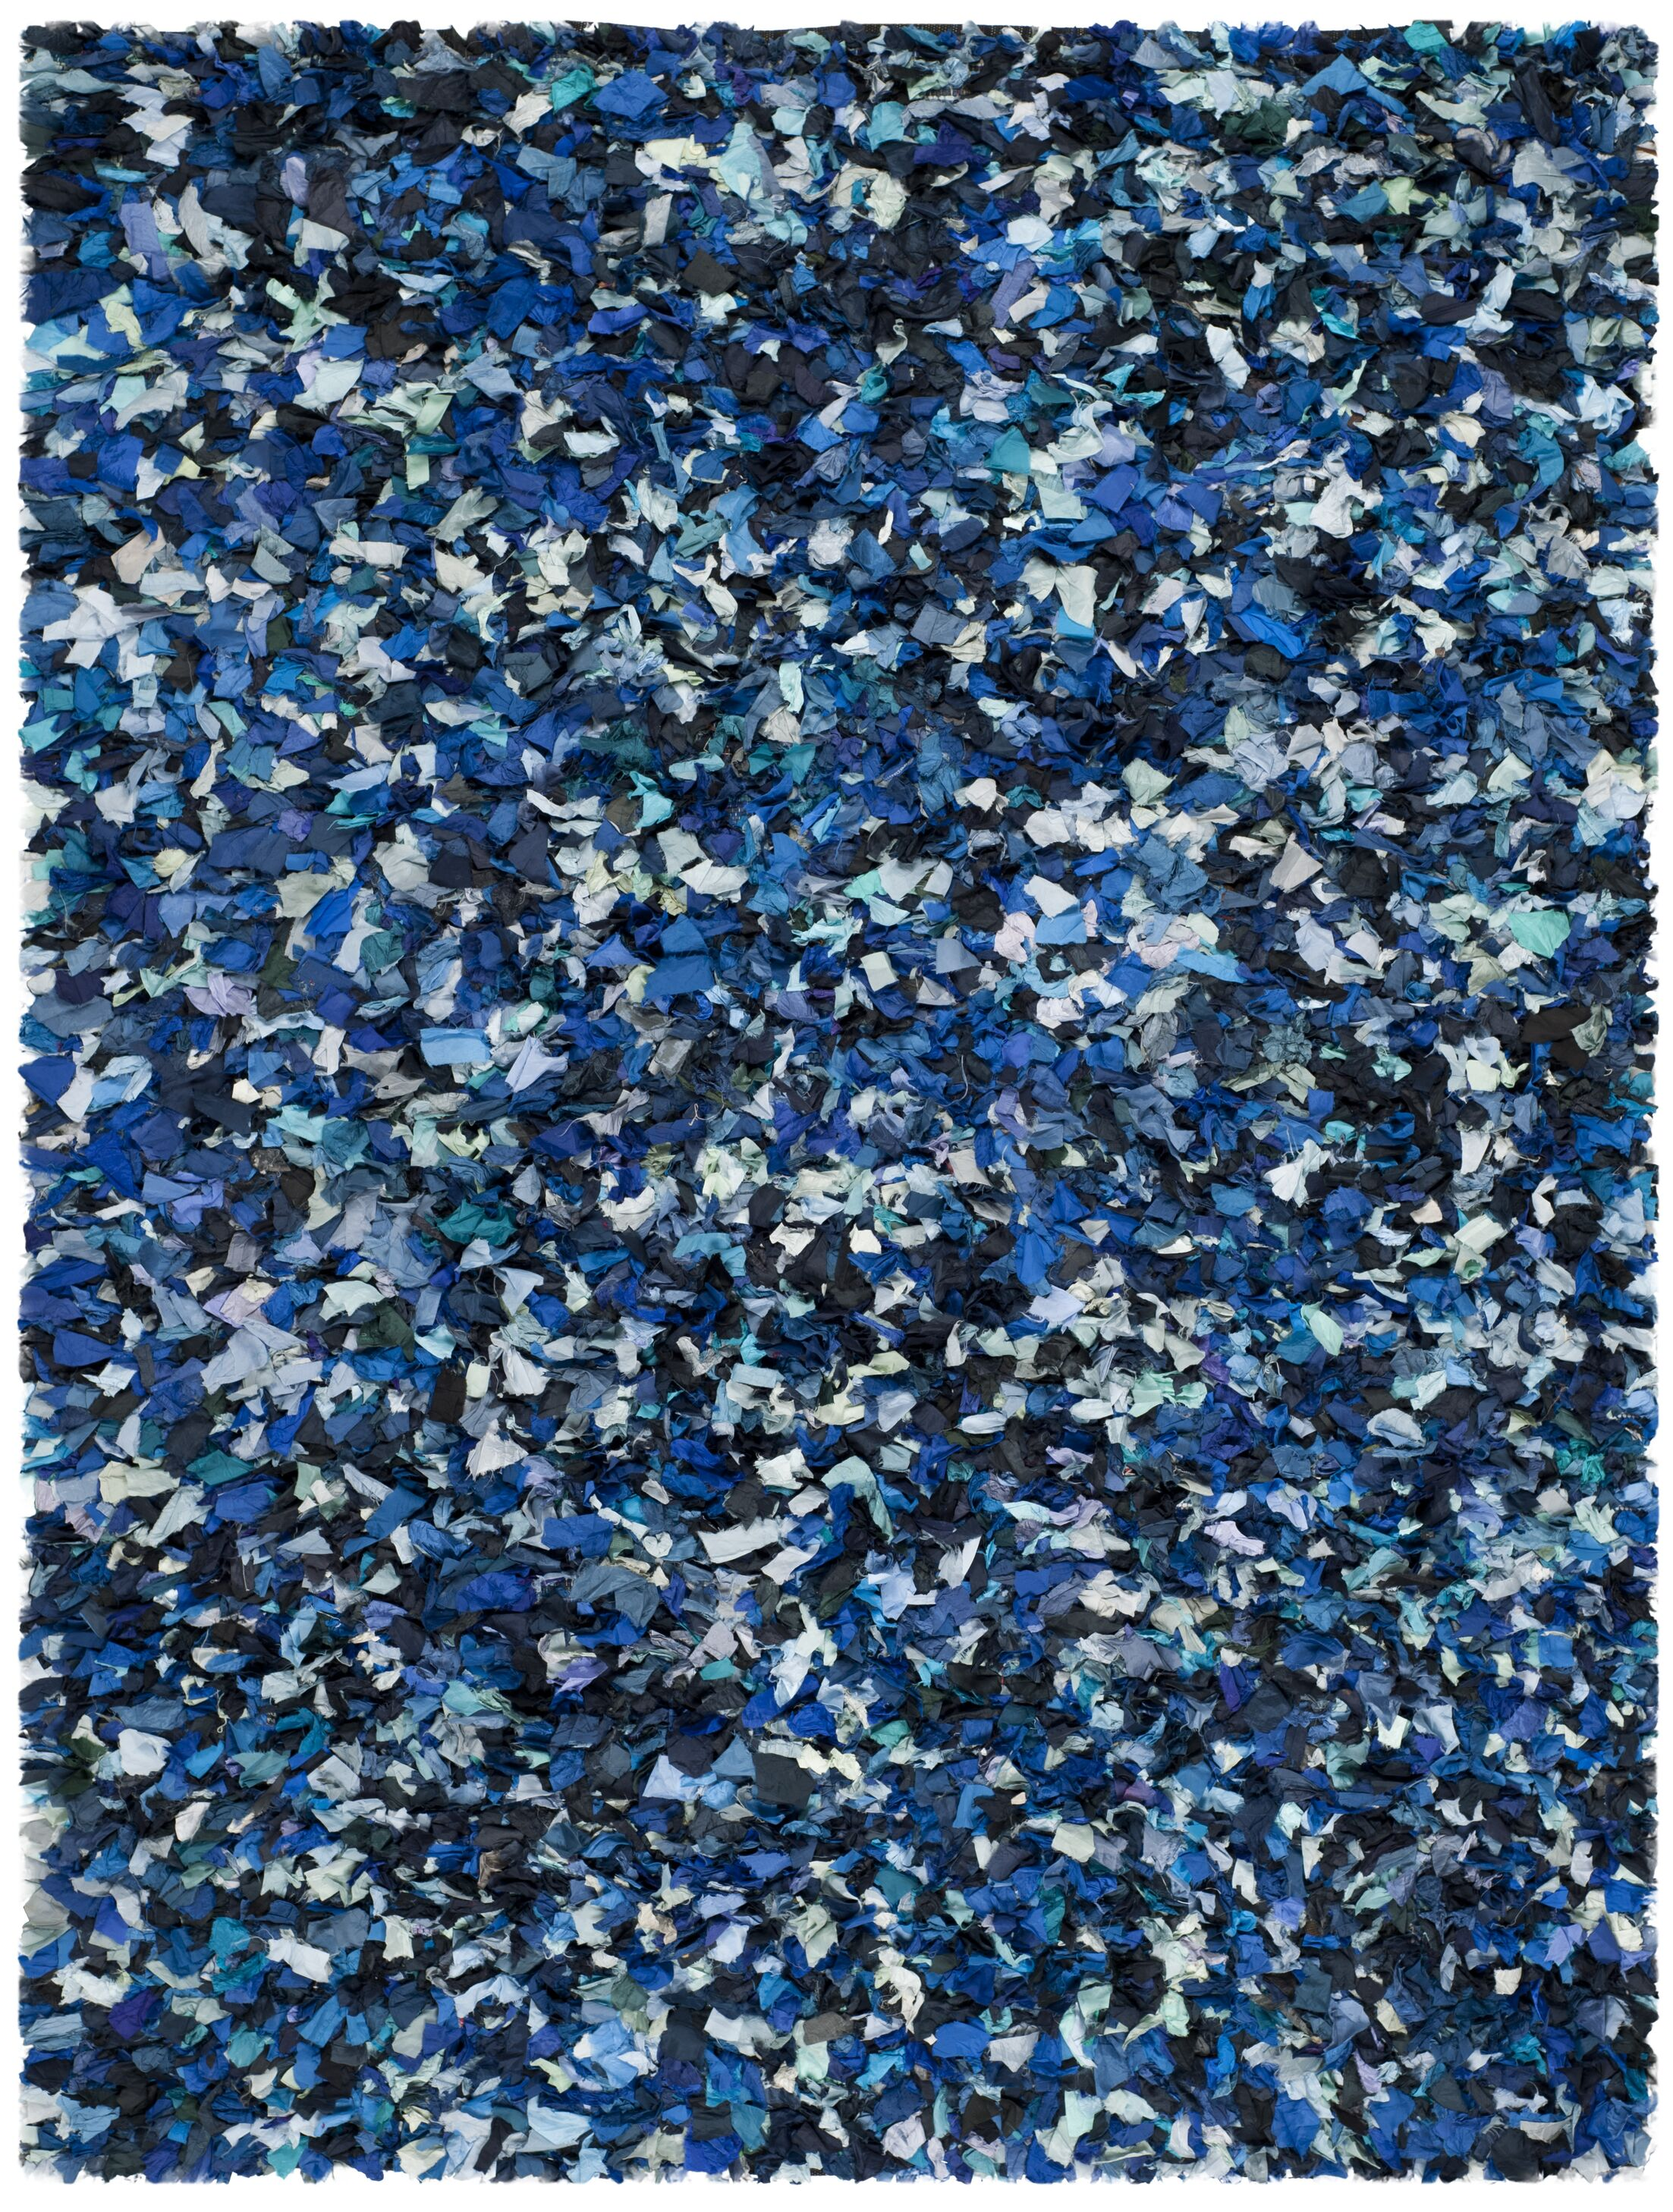 Messiah Hand-Tufted Blue/Black Area Rug Rug Size: Rectangle 8' x 10'